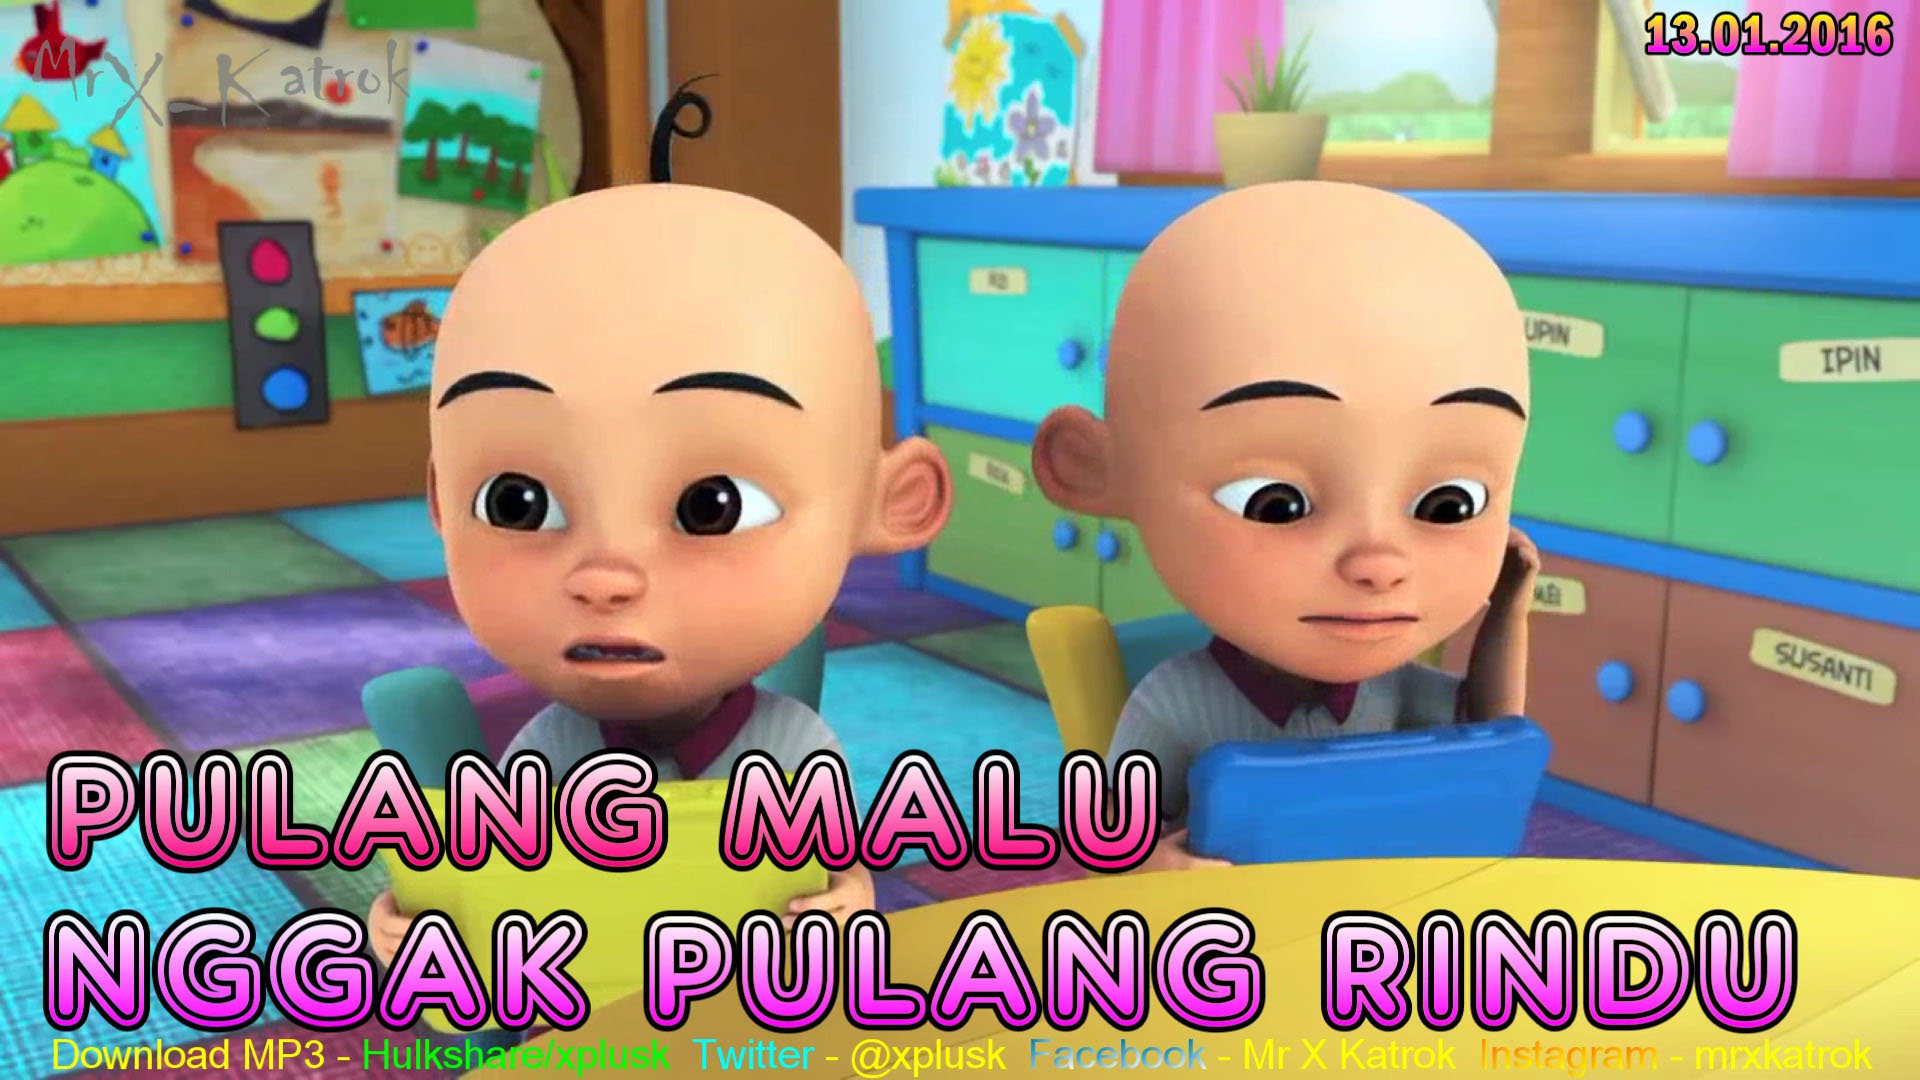 Upin Ipin - Free downloads and reviews - CNET Download.com